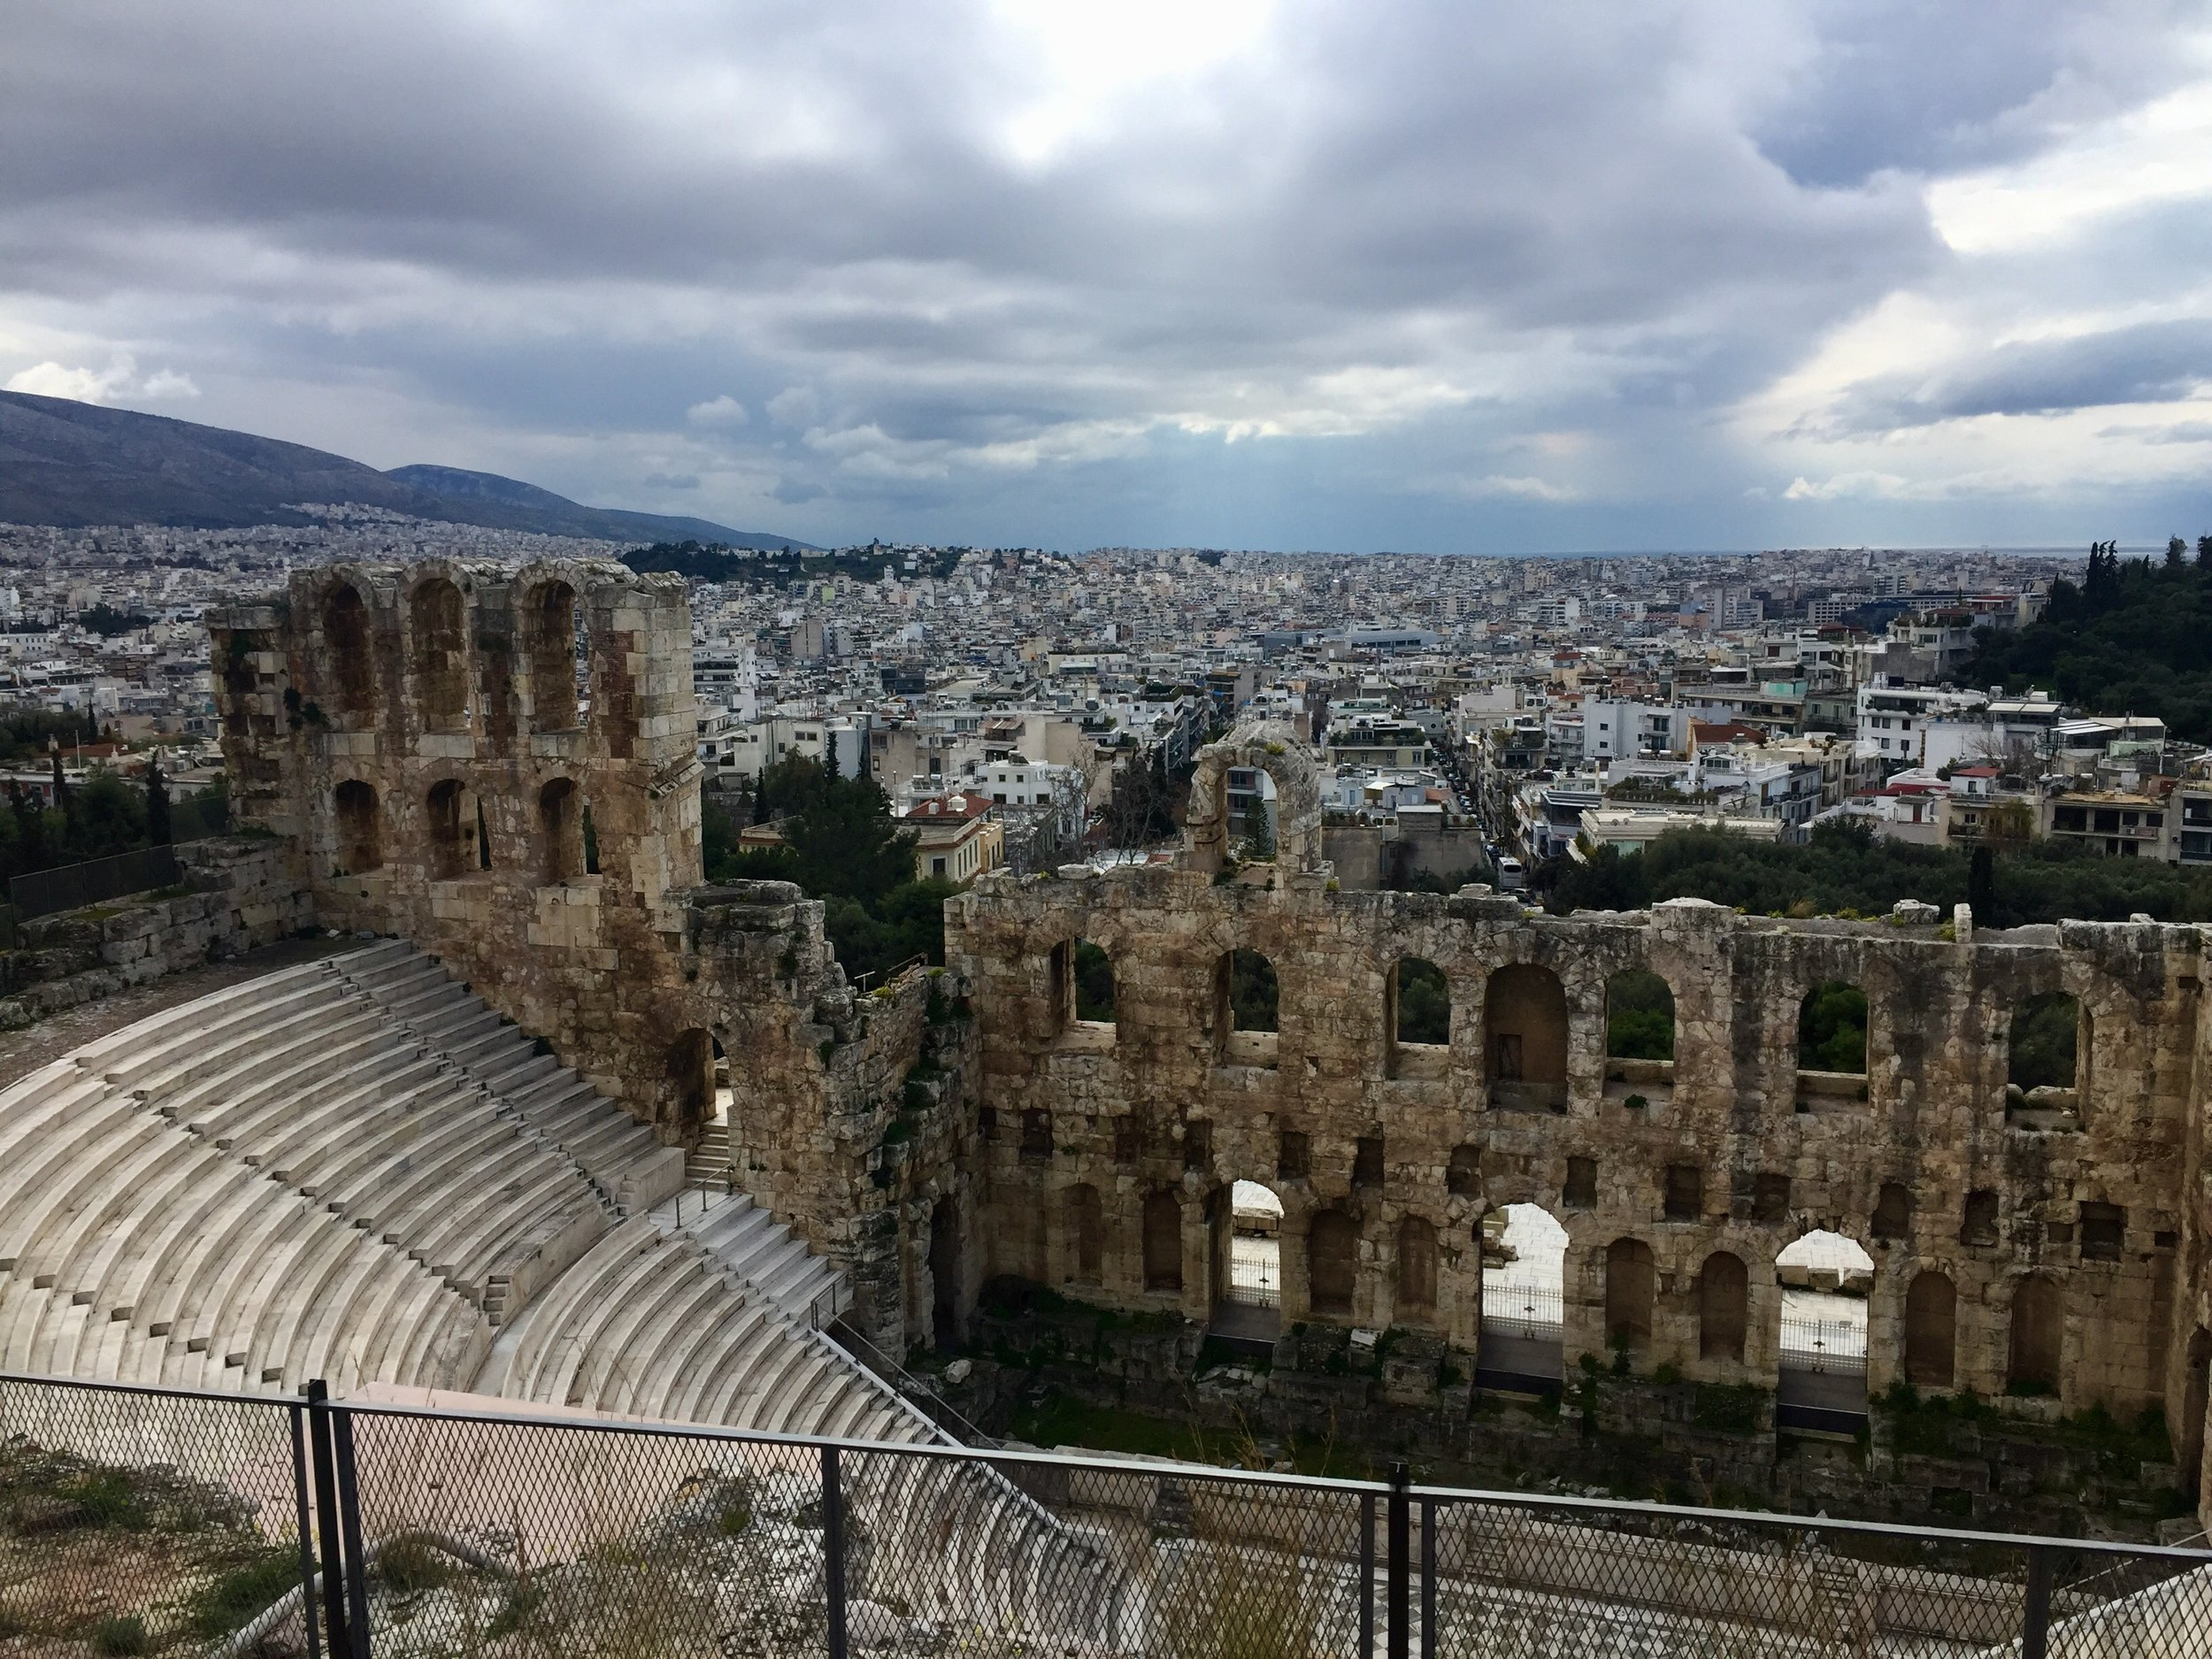 Theater of Dionysus (sixth century B.C.E.)